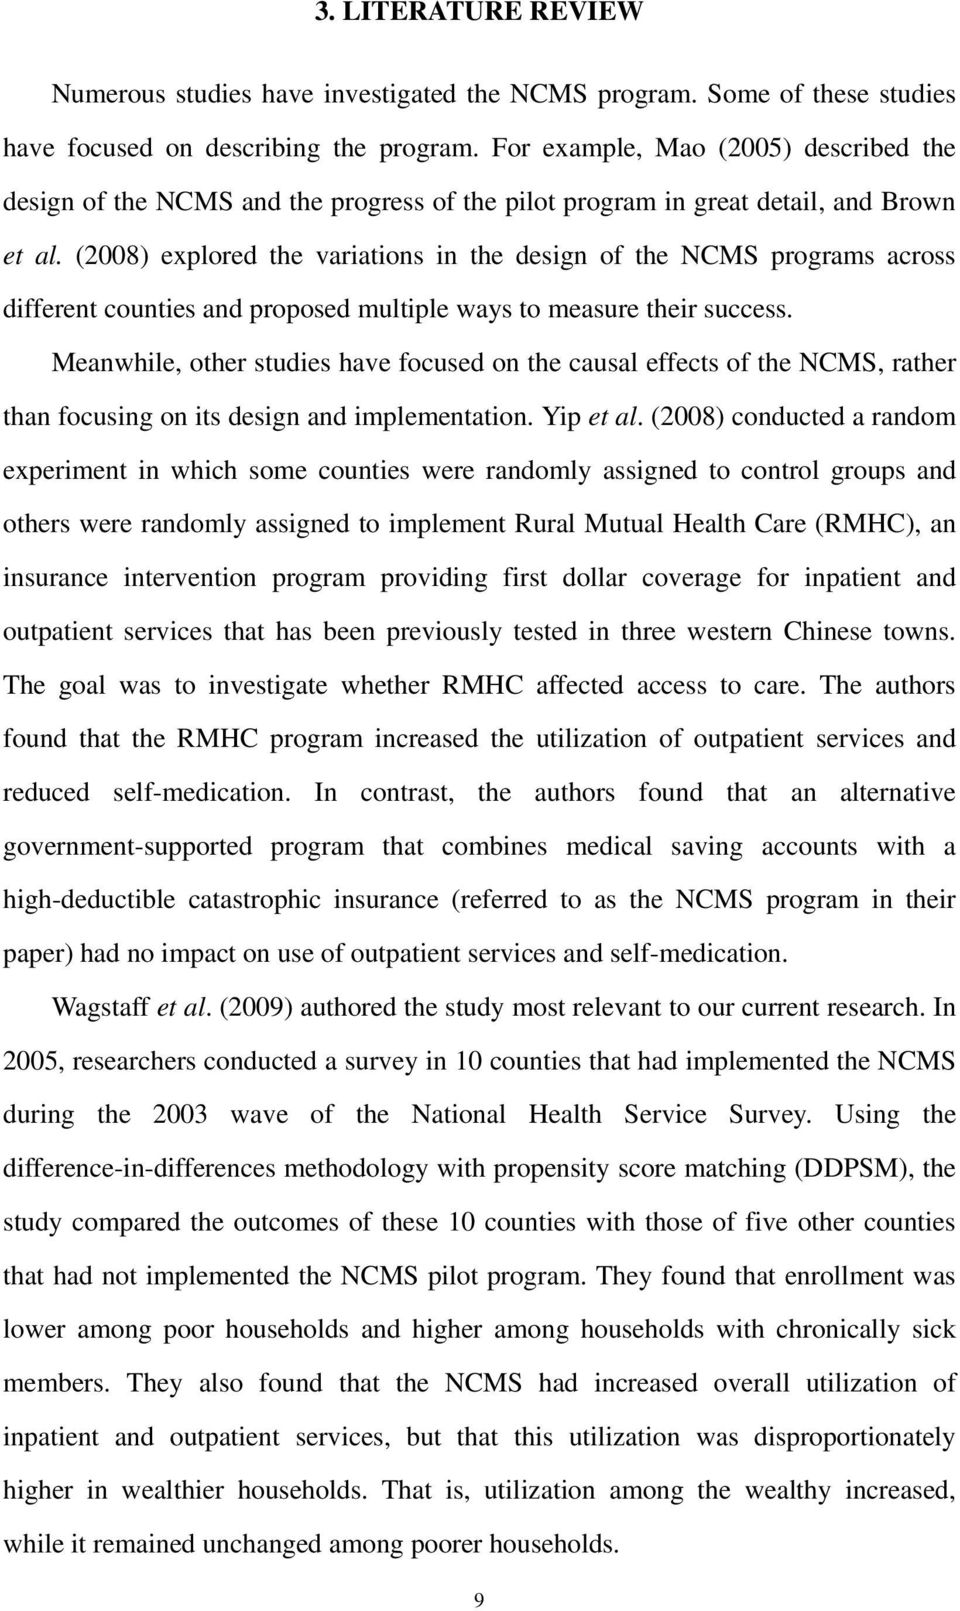 (2008) explored the variations in the design of the NCMS programs across different counties and proposed multiple ways to measure their success.